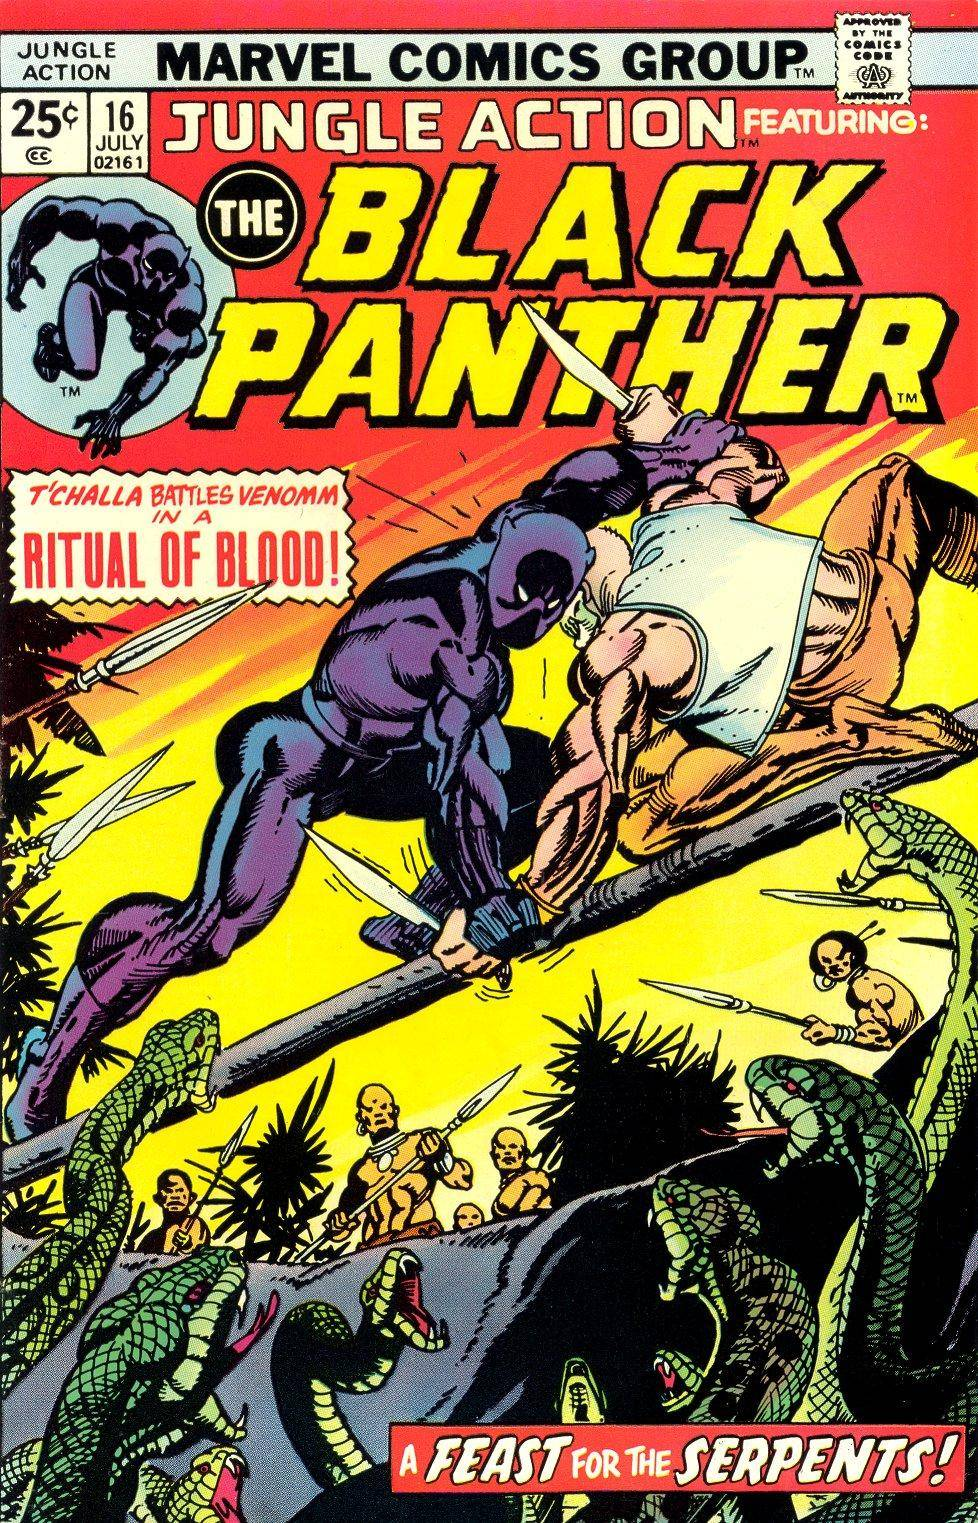 Jungle Action v2 016 featuring Black Panther